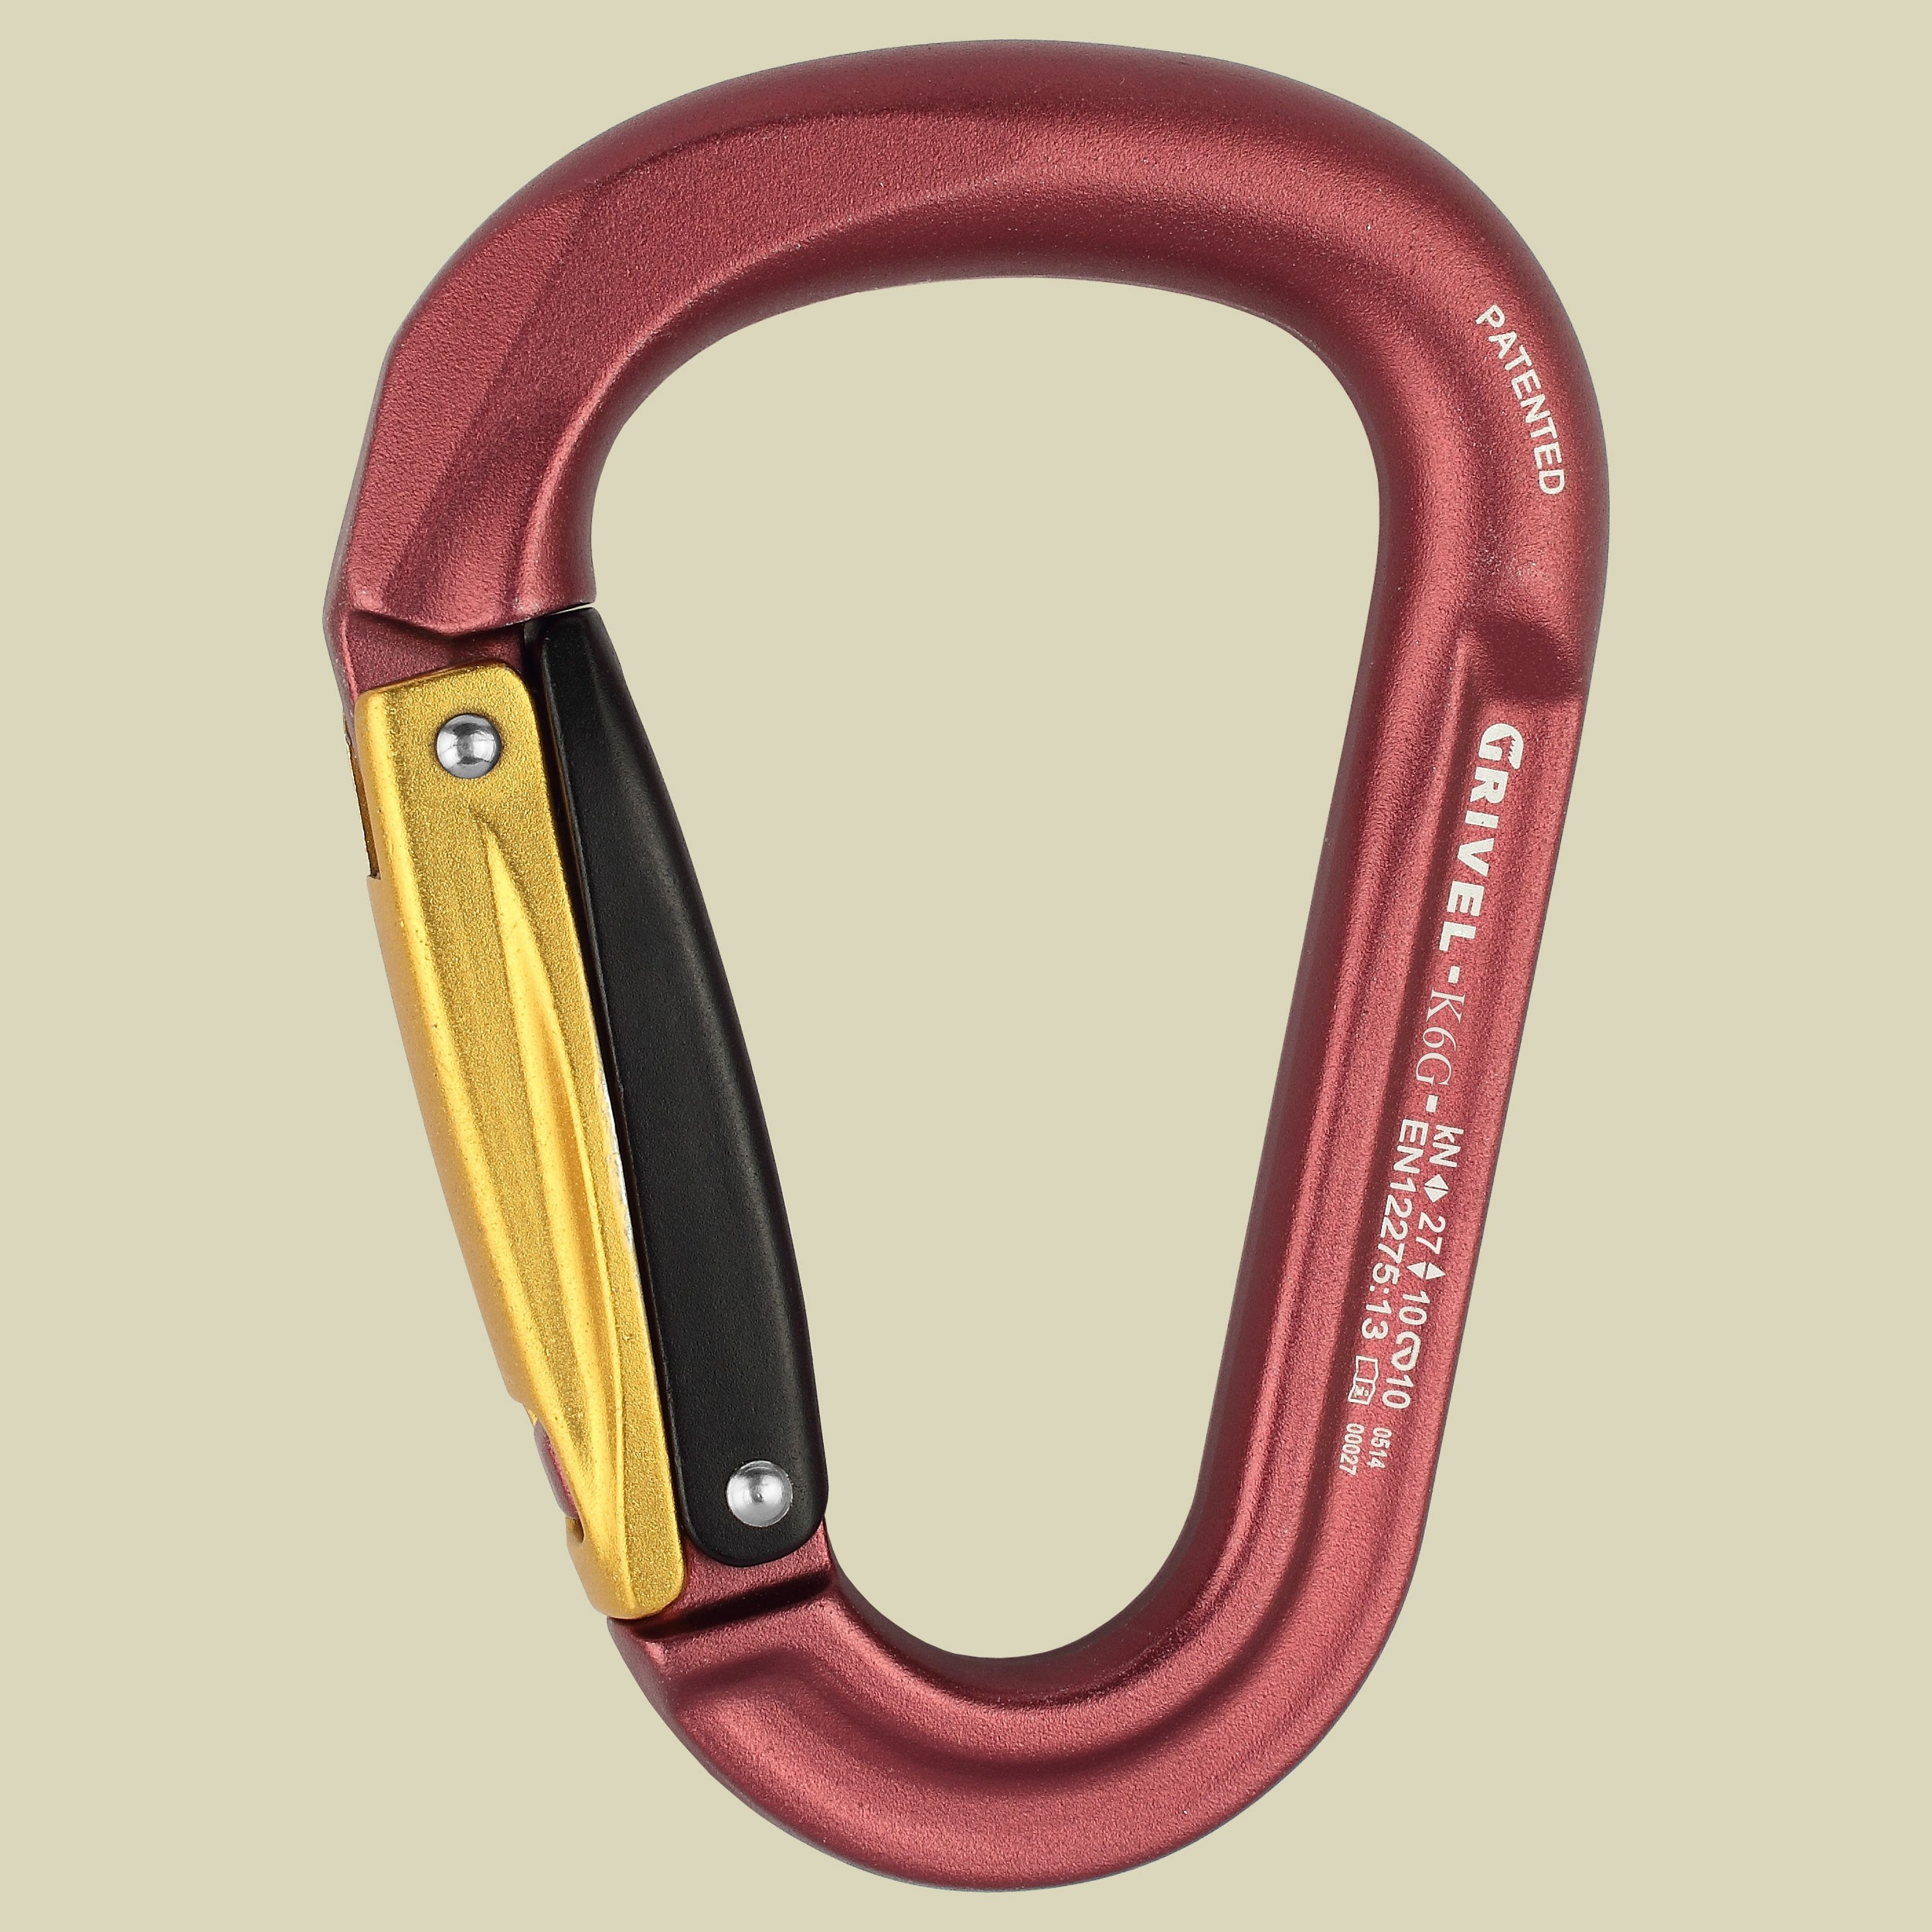 grivel_PHL_RSK6G_rock_safety_carabiner_K6G_MEGA_TWIN_GATE_fallback